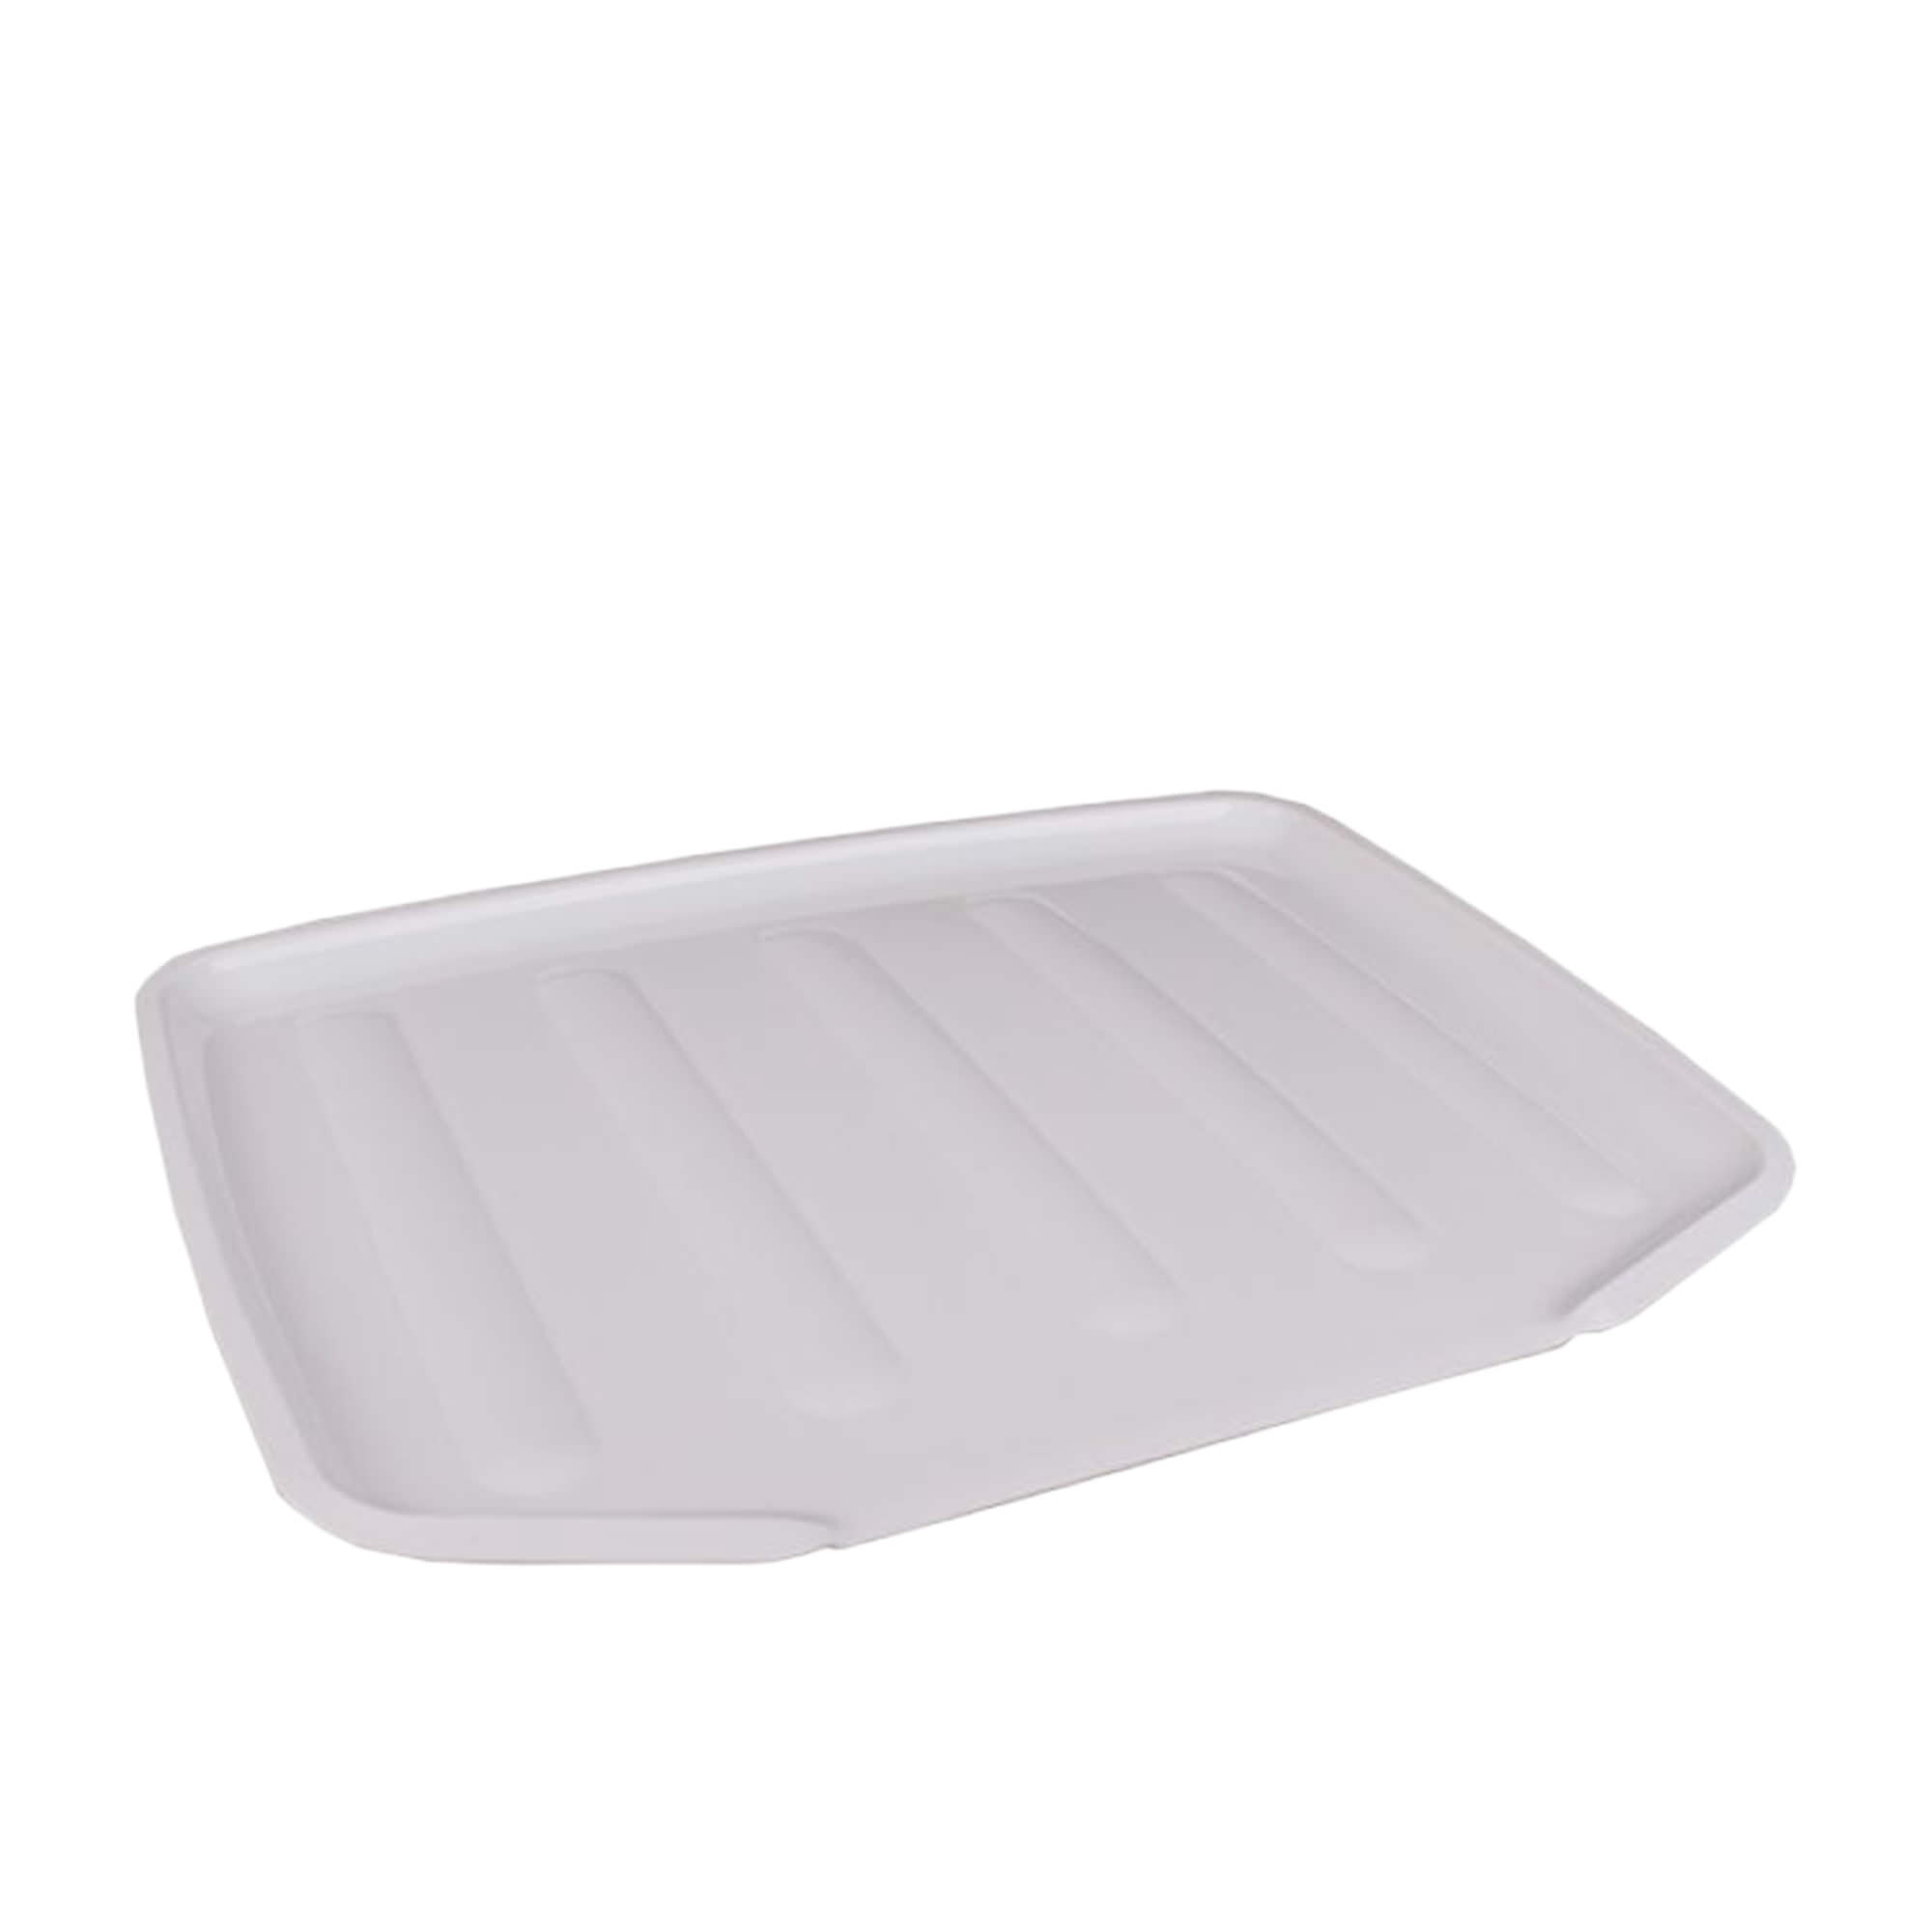 D.Line Large Dish Drainer White